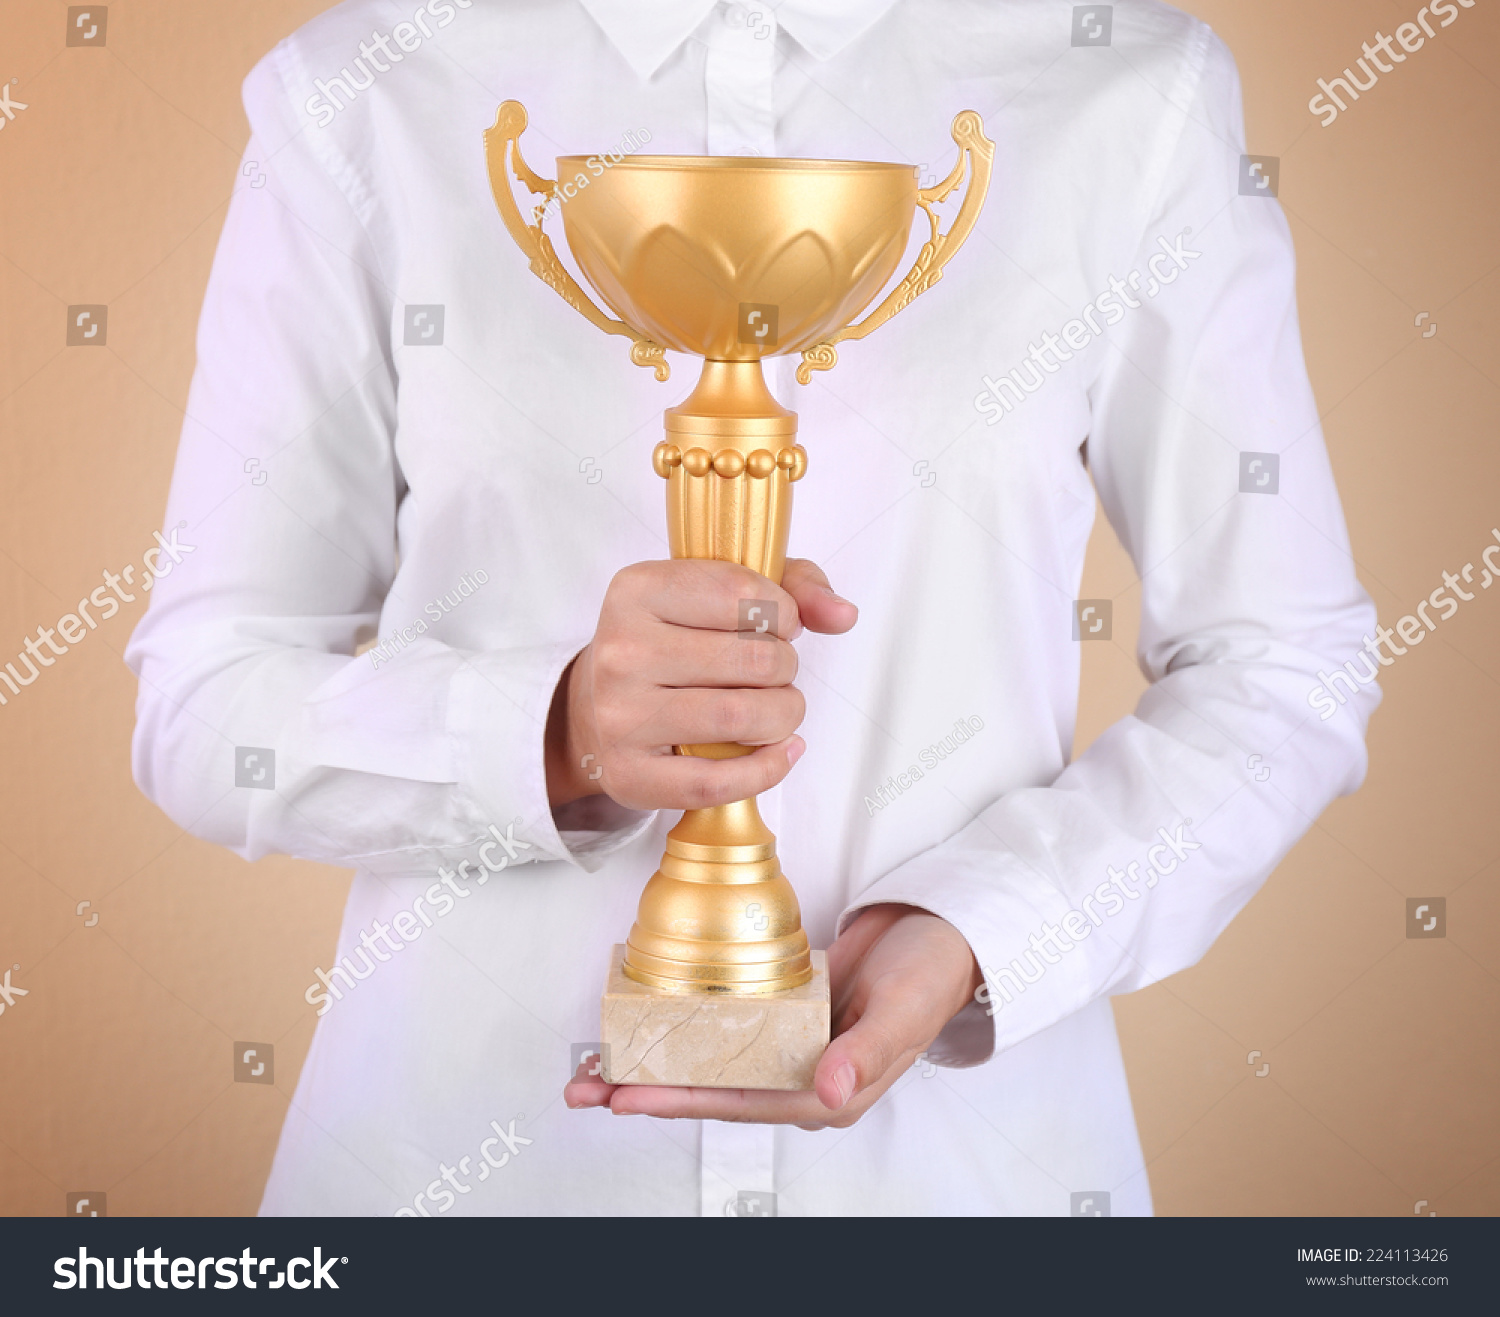 Woman holding trophy cup on color background #224113426